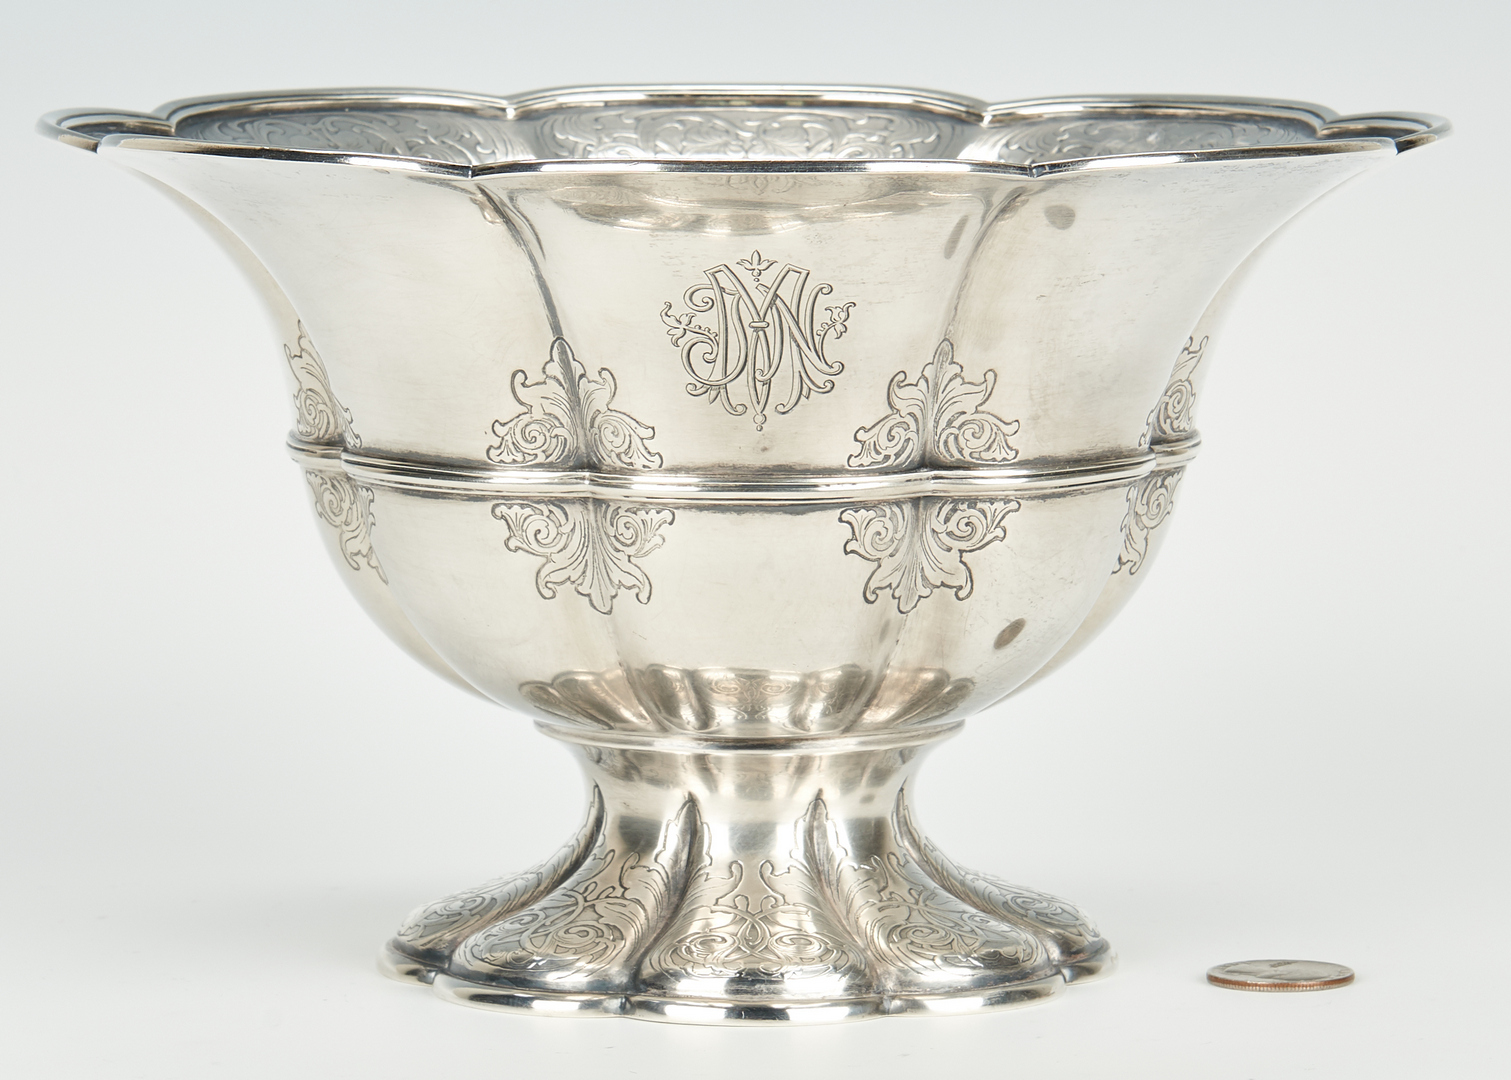 Lot 755: Tiffany & Co. Art Nouveau Sterling Silver Footed Bowl